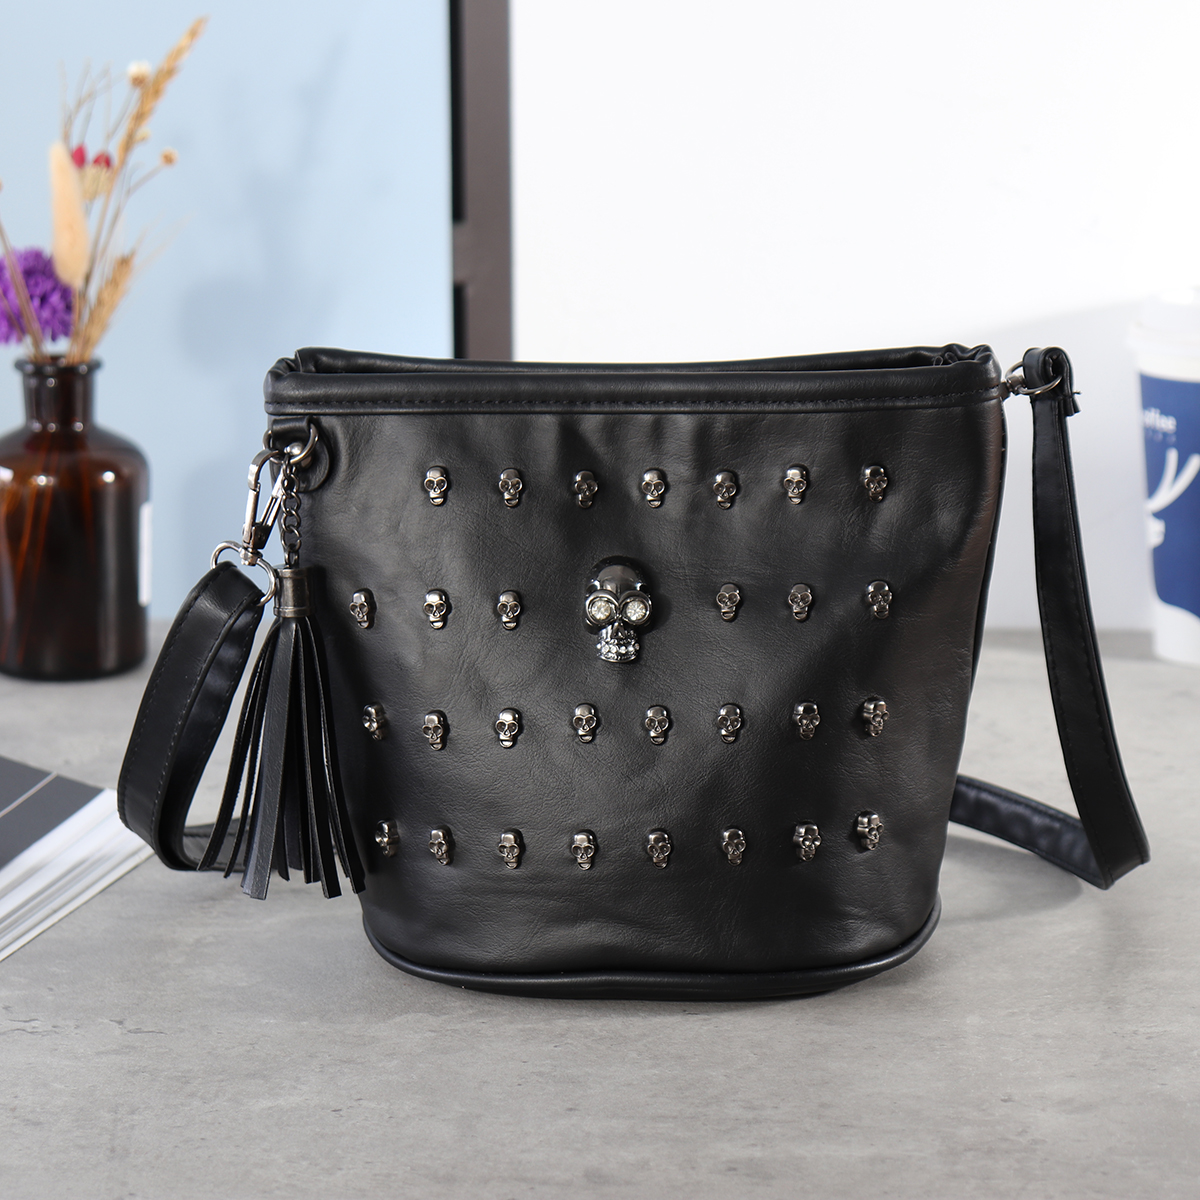 452f6092ebec Details about Kadell Women Skull Punk Goth Tassel Messenger Shoulder Bag  Crossbody Tote